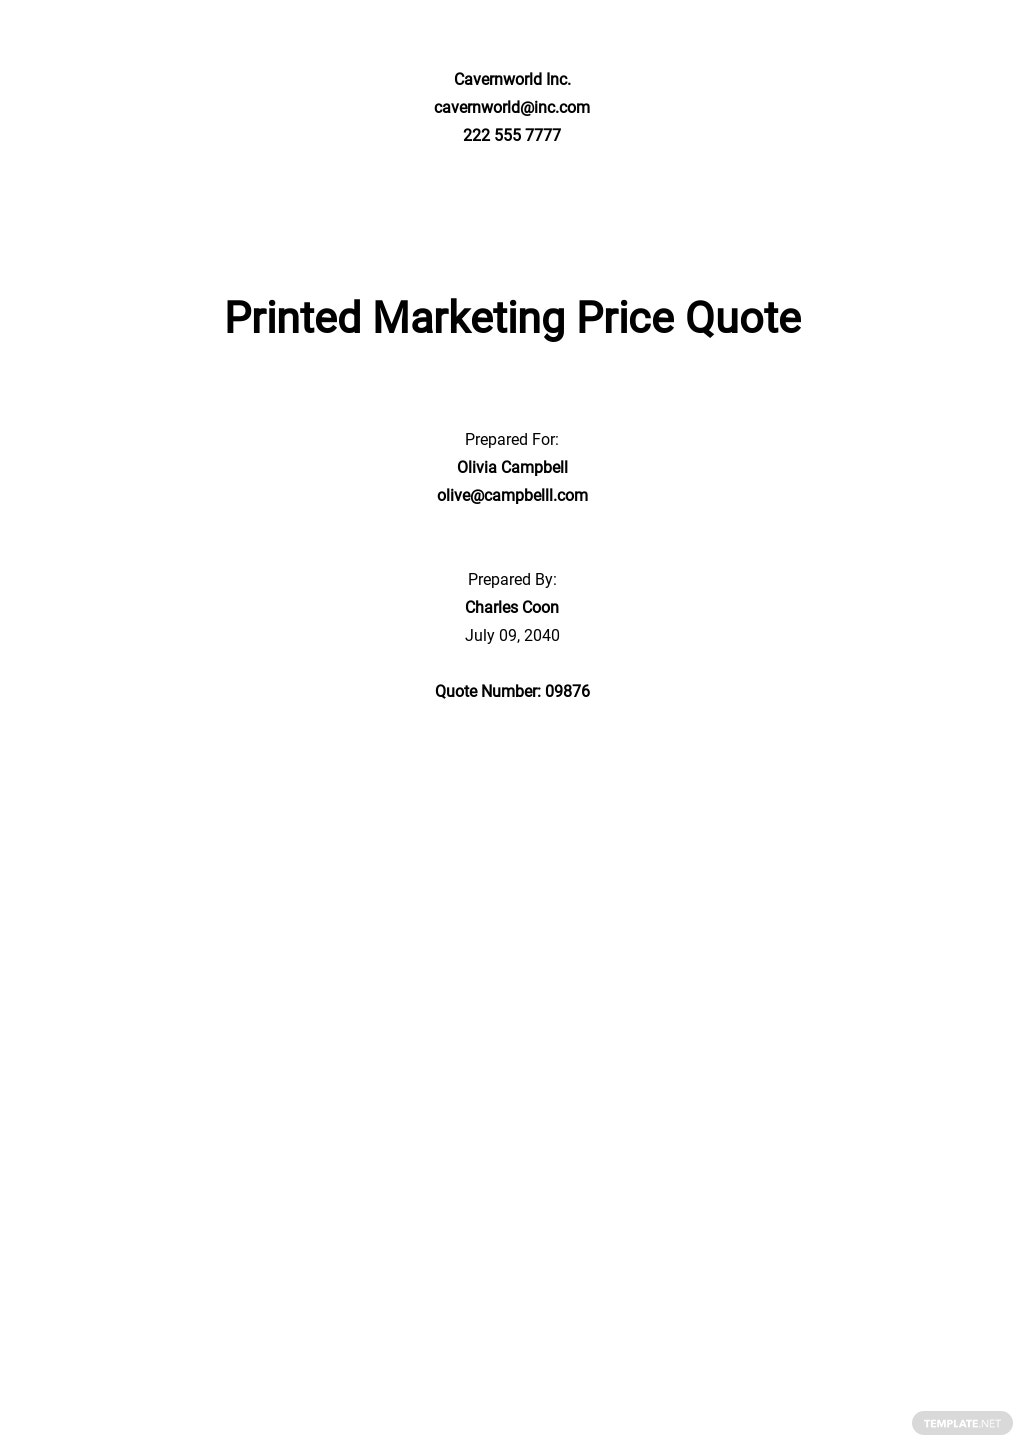 Business Price Quotation Template.jpe